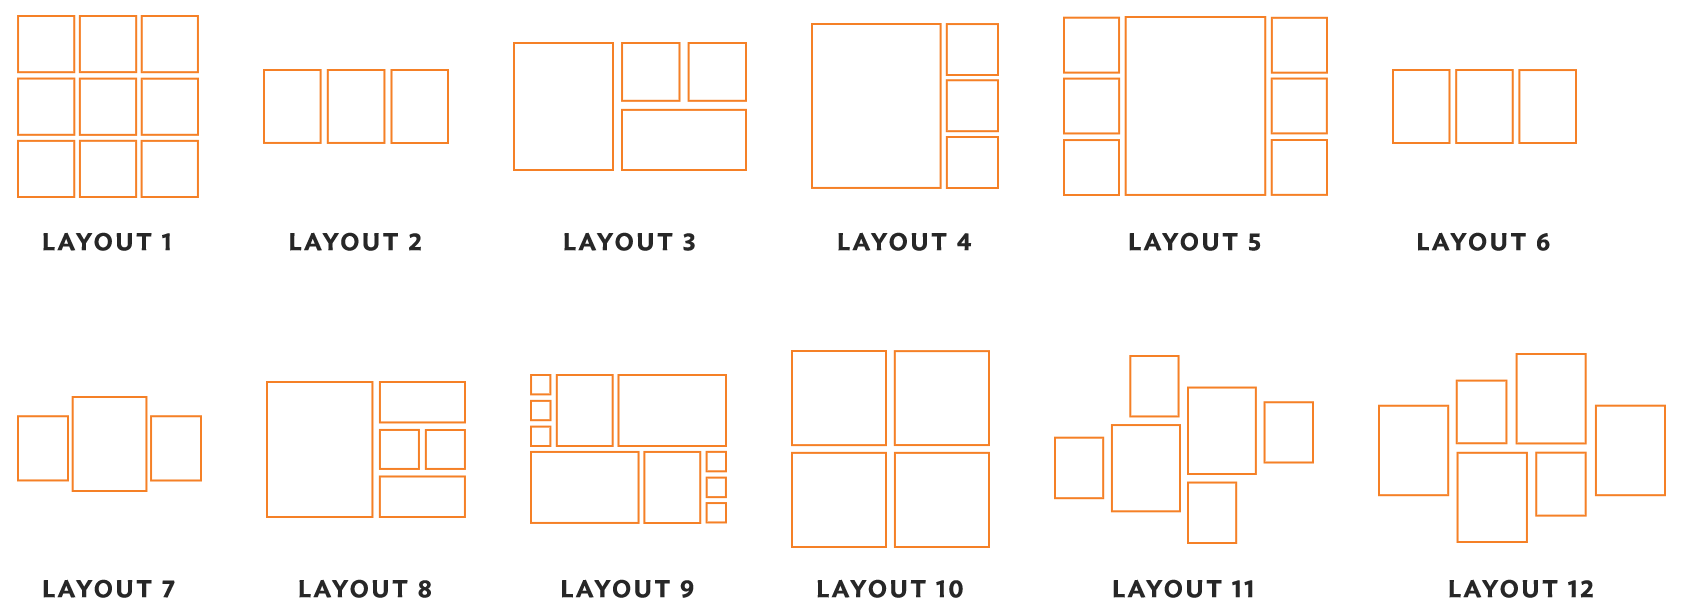 Argenta Wellness prints layouts_sizes.png